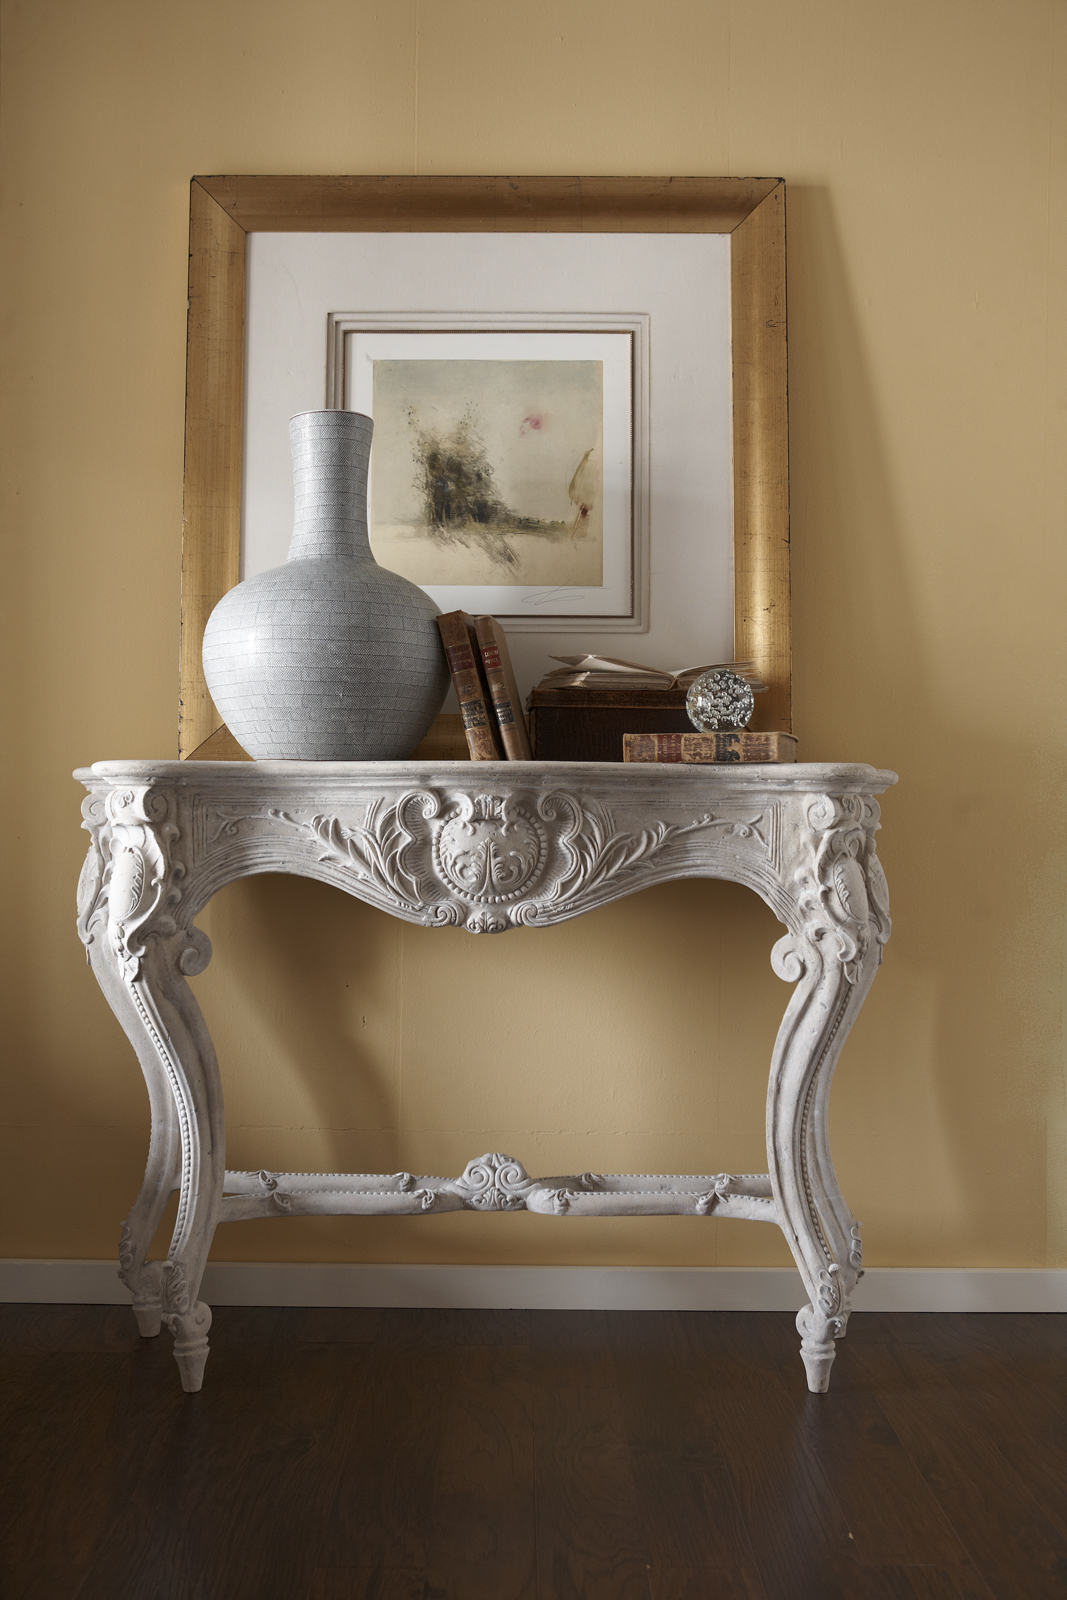 phillips co console with images entryway tables decor on small entryway console table decor ideas make a statement with your home s entryway id=79819